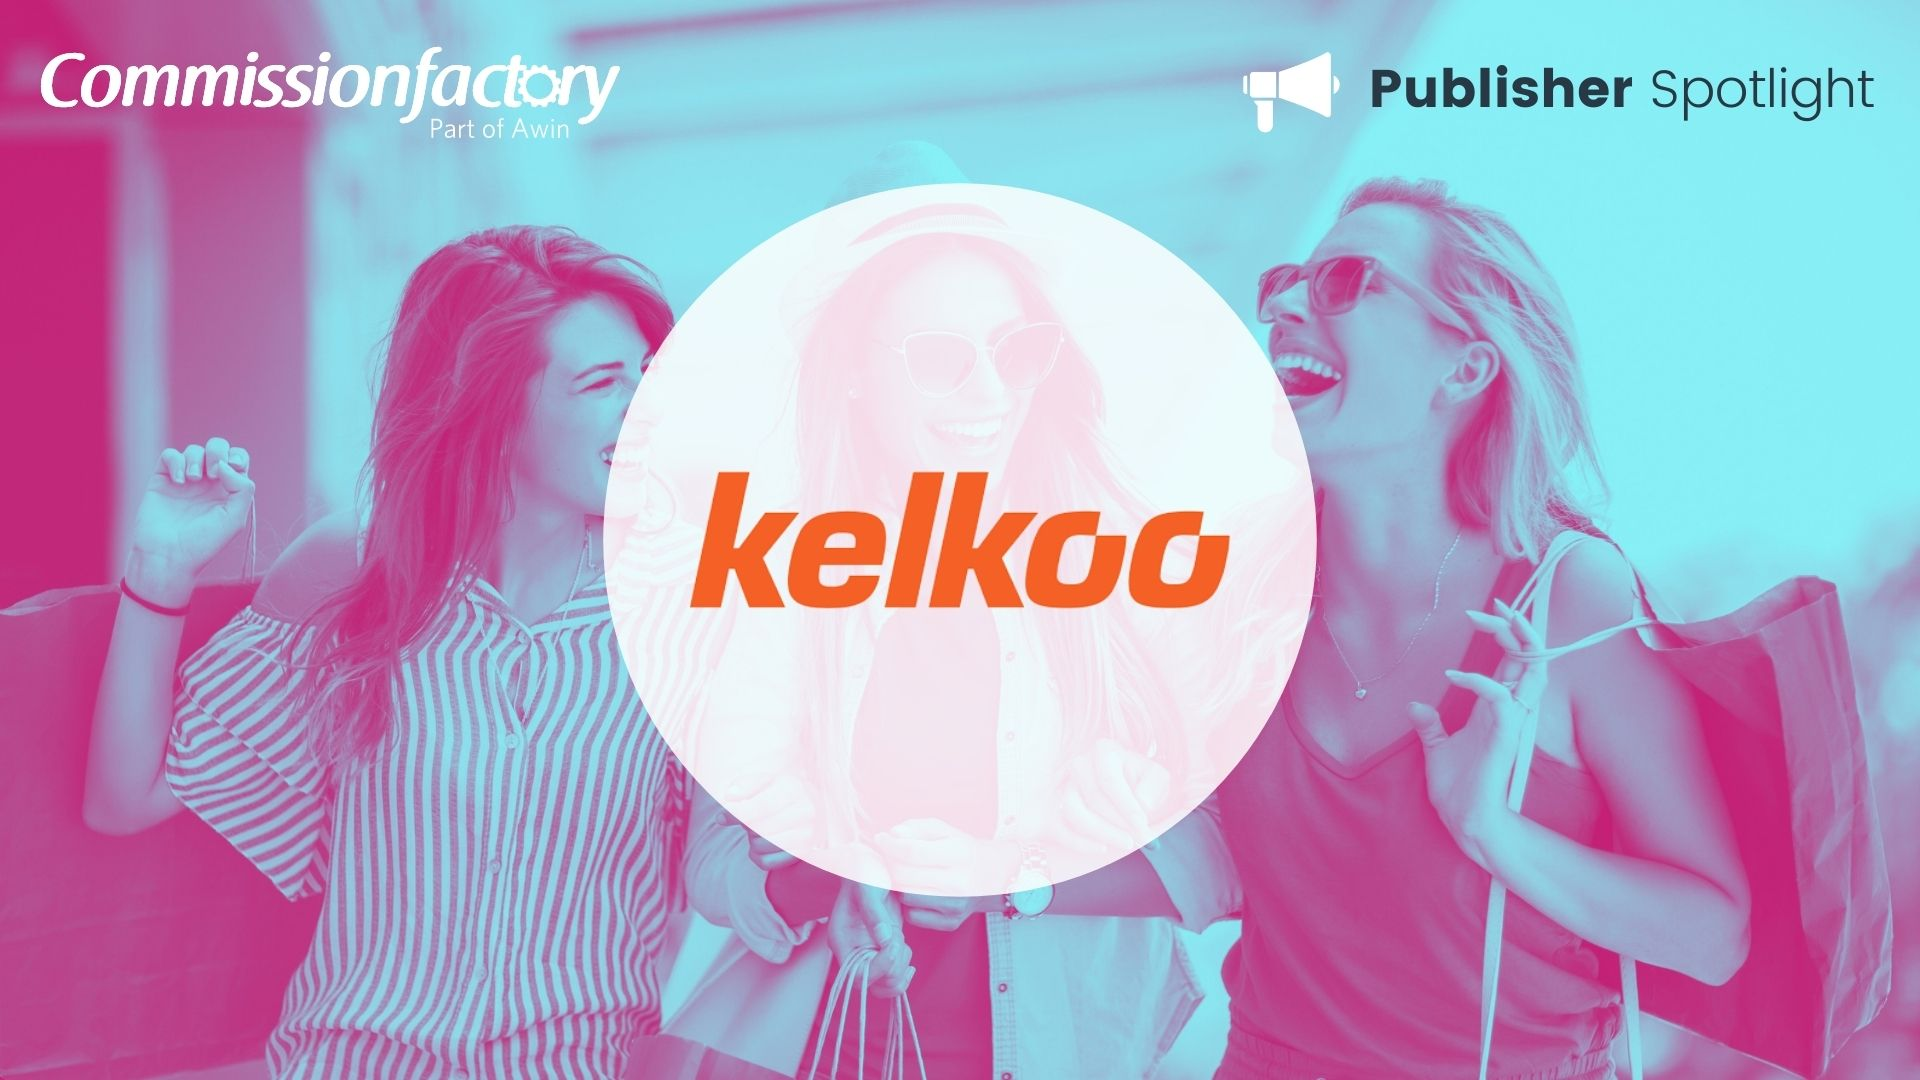 Kelkoo launches in Australia with Commission Factory